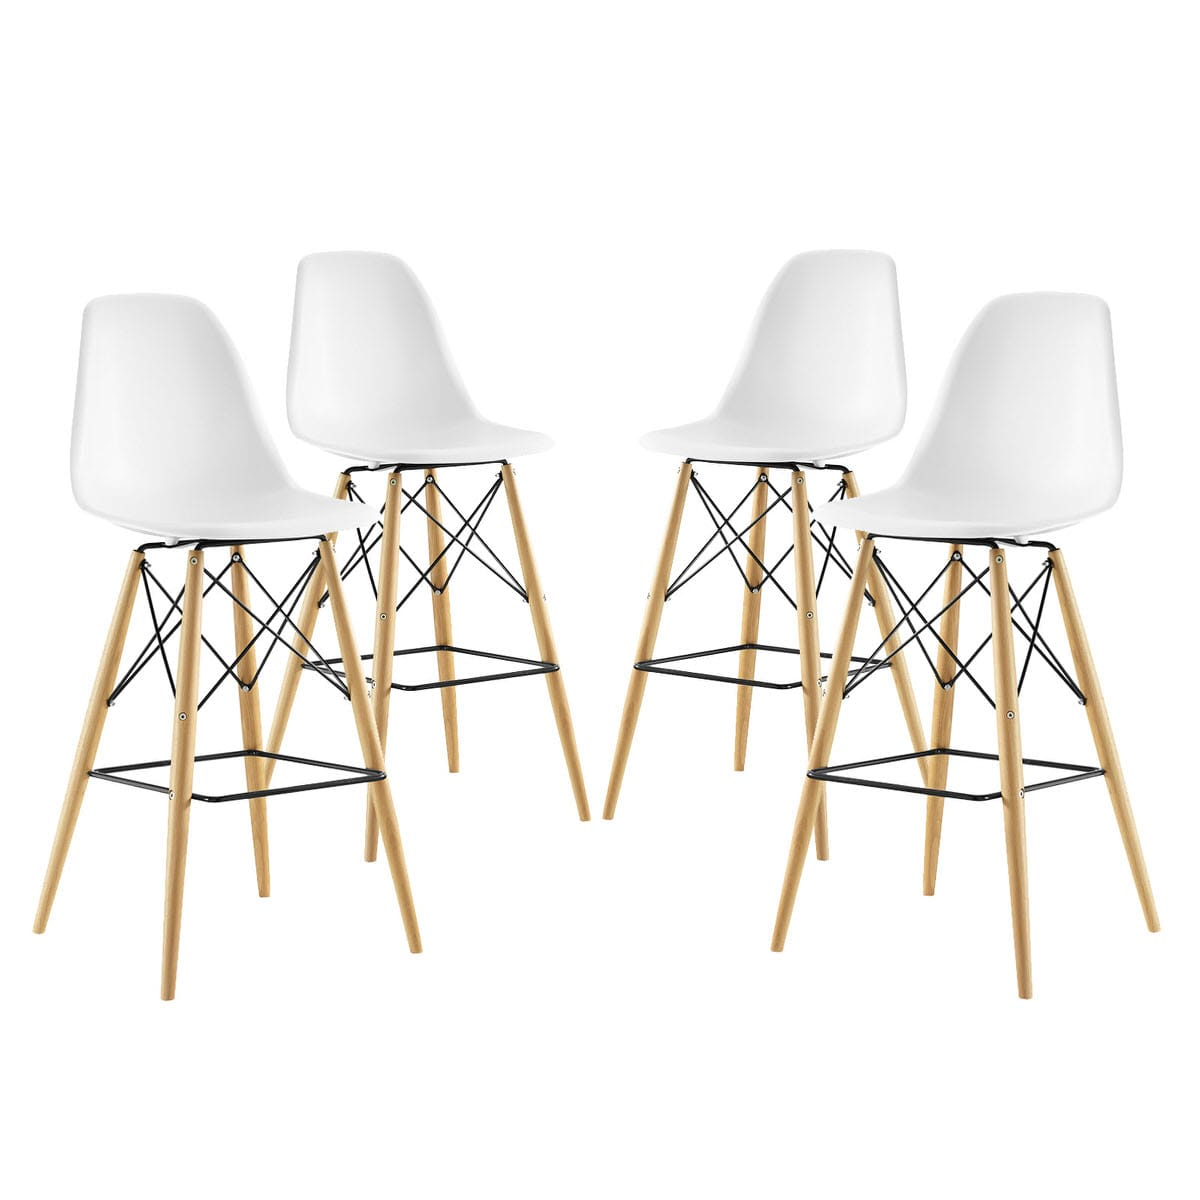 Strange Pyramid Dining Side Bar Stool Set Of 4 White By Modern Living Gamerscity Chair Design For Home Gamerscityorg